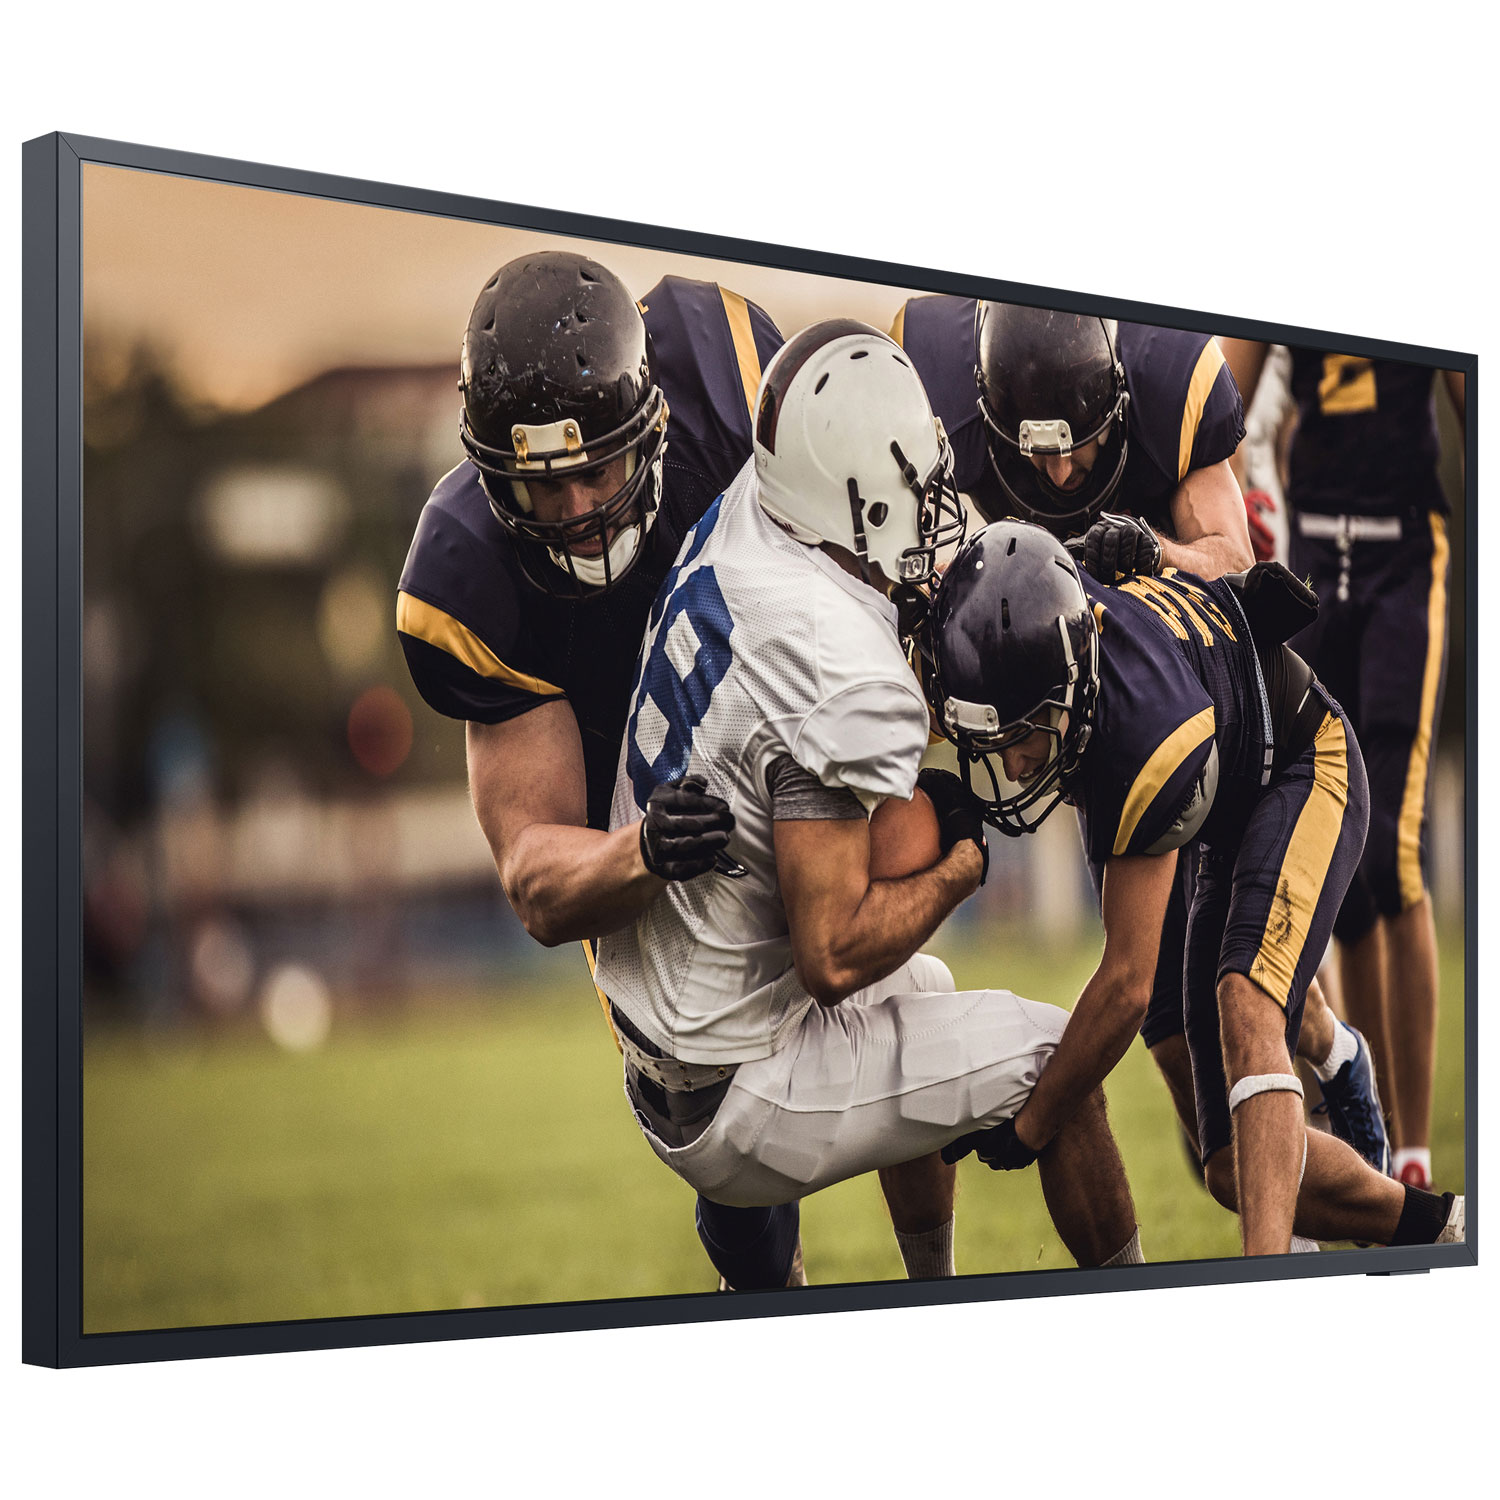 Outdoor TV showing football